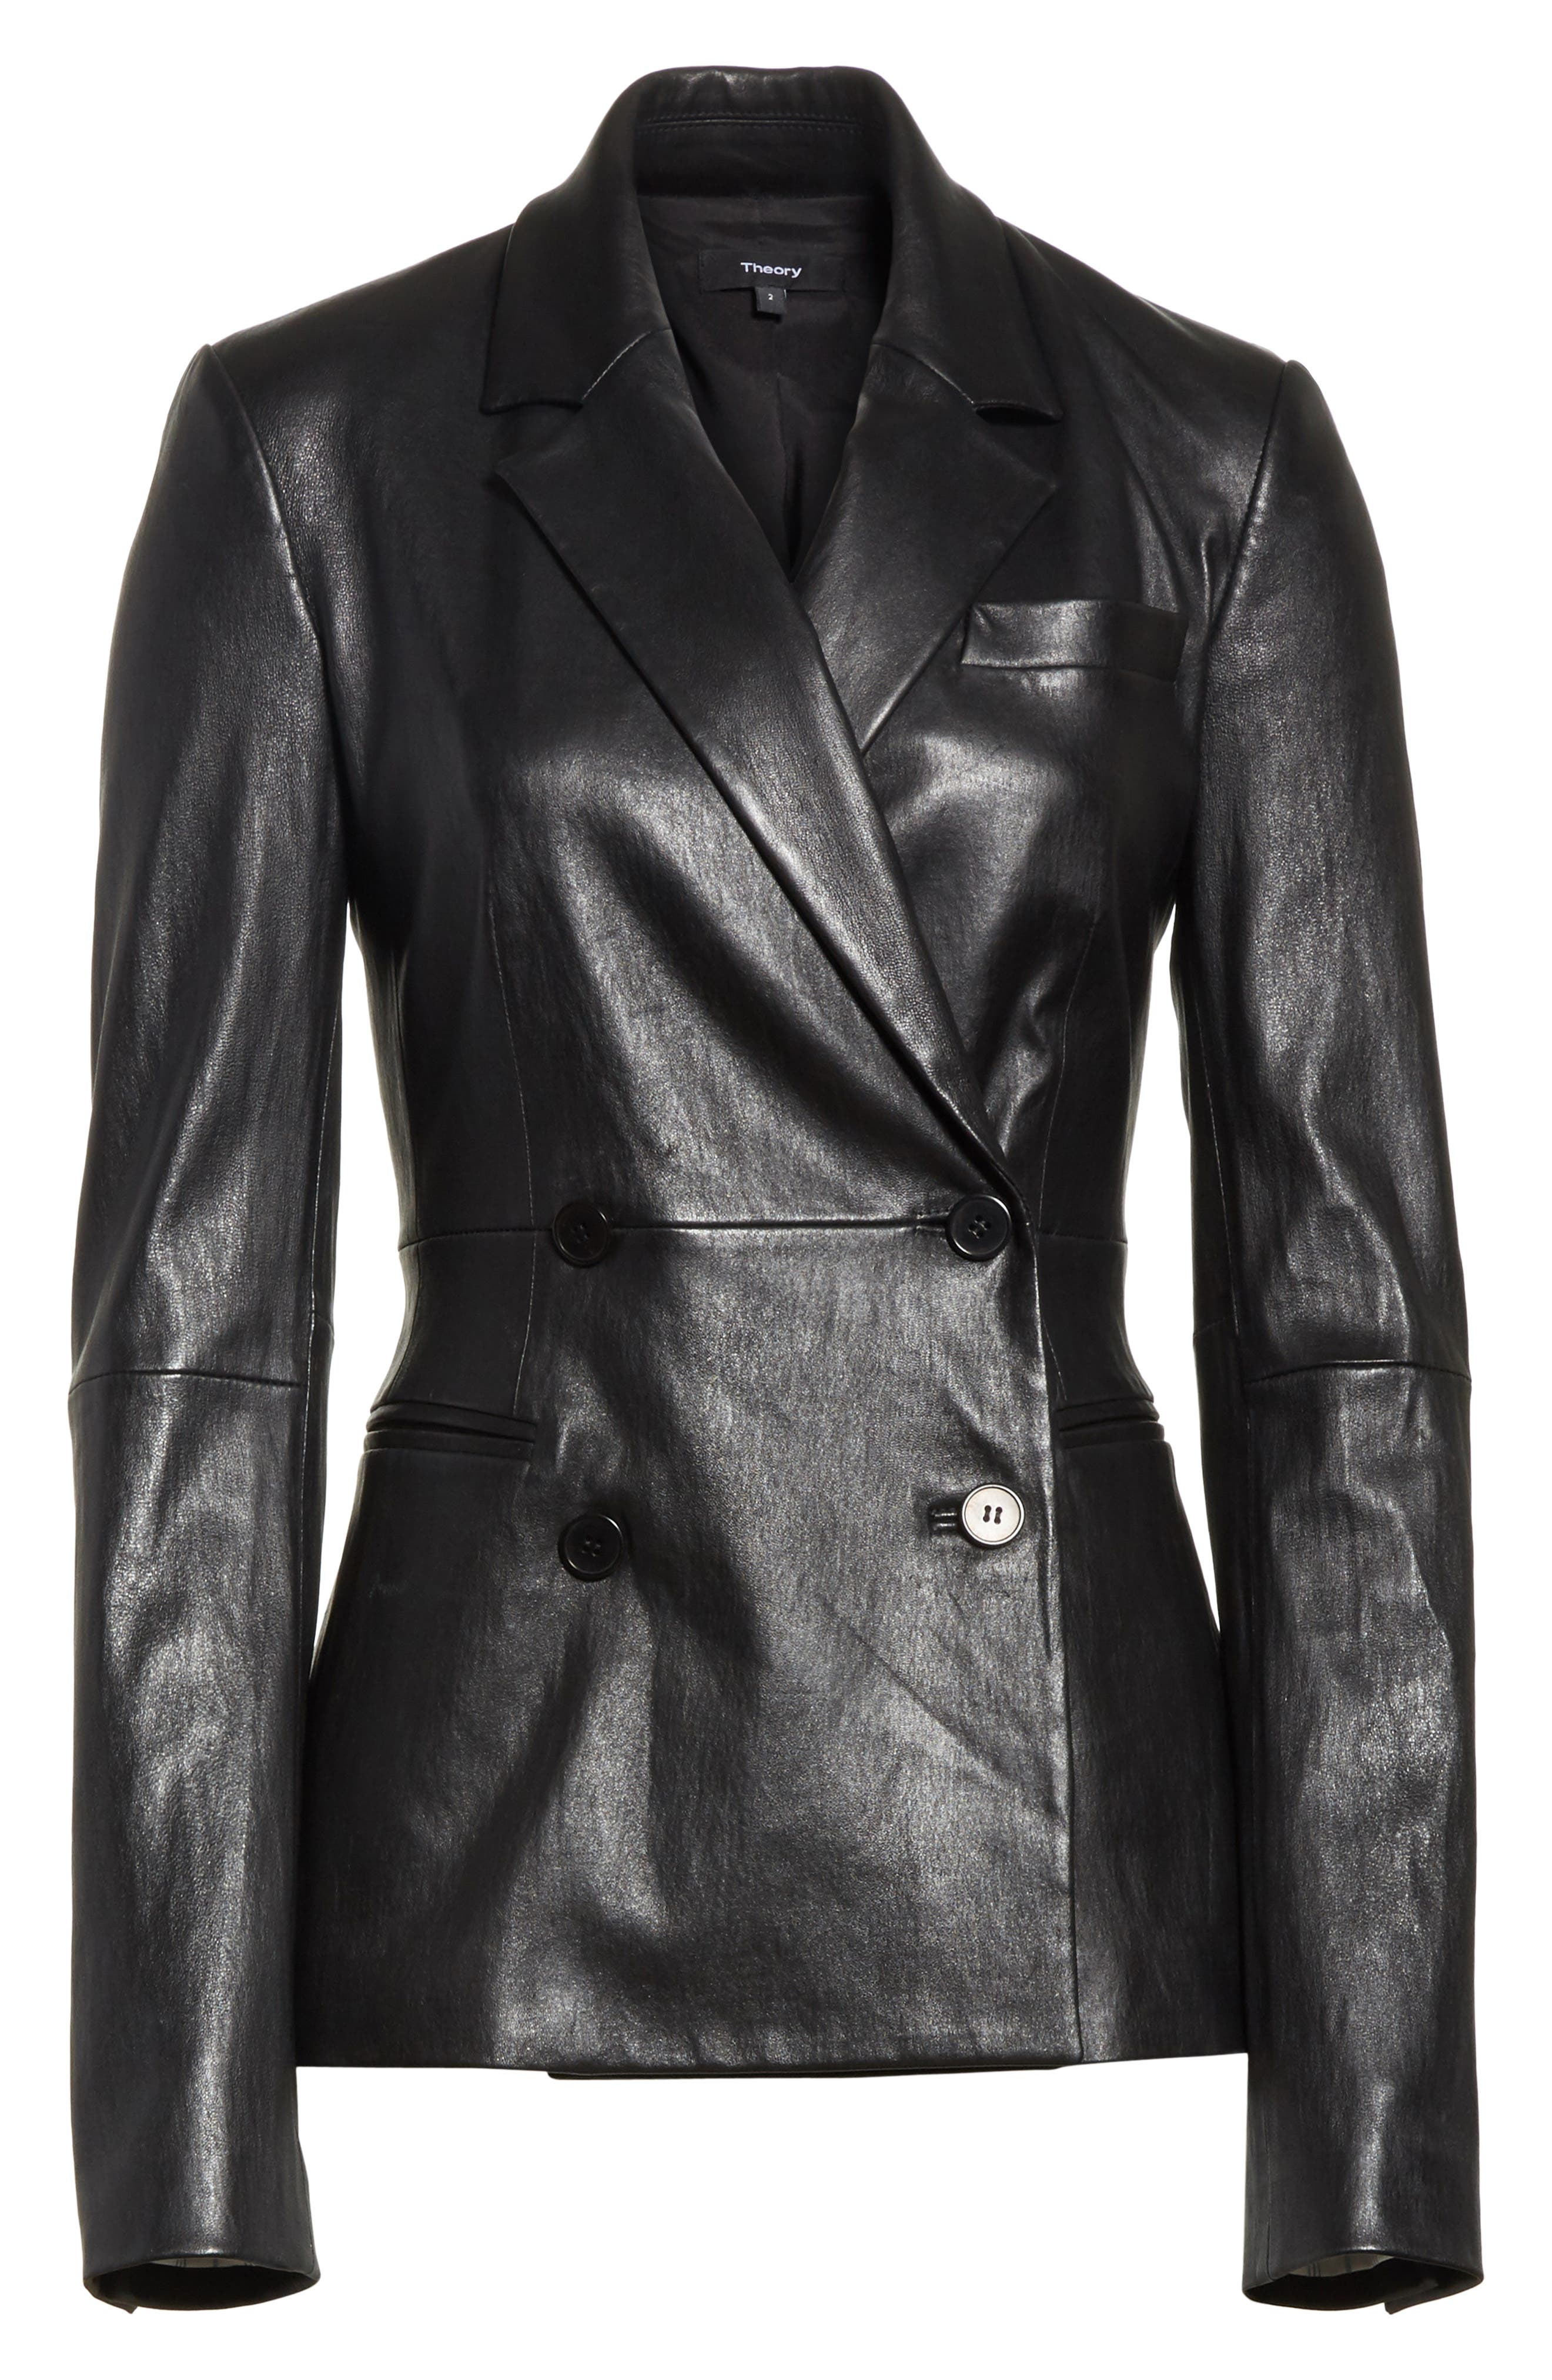 Bristol Leather Blazer,                             Alternate thumbnail 6, color,                             Black